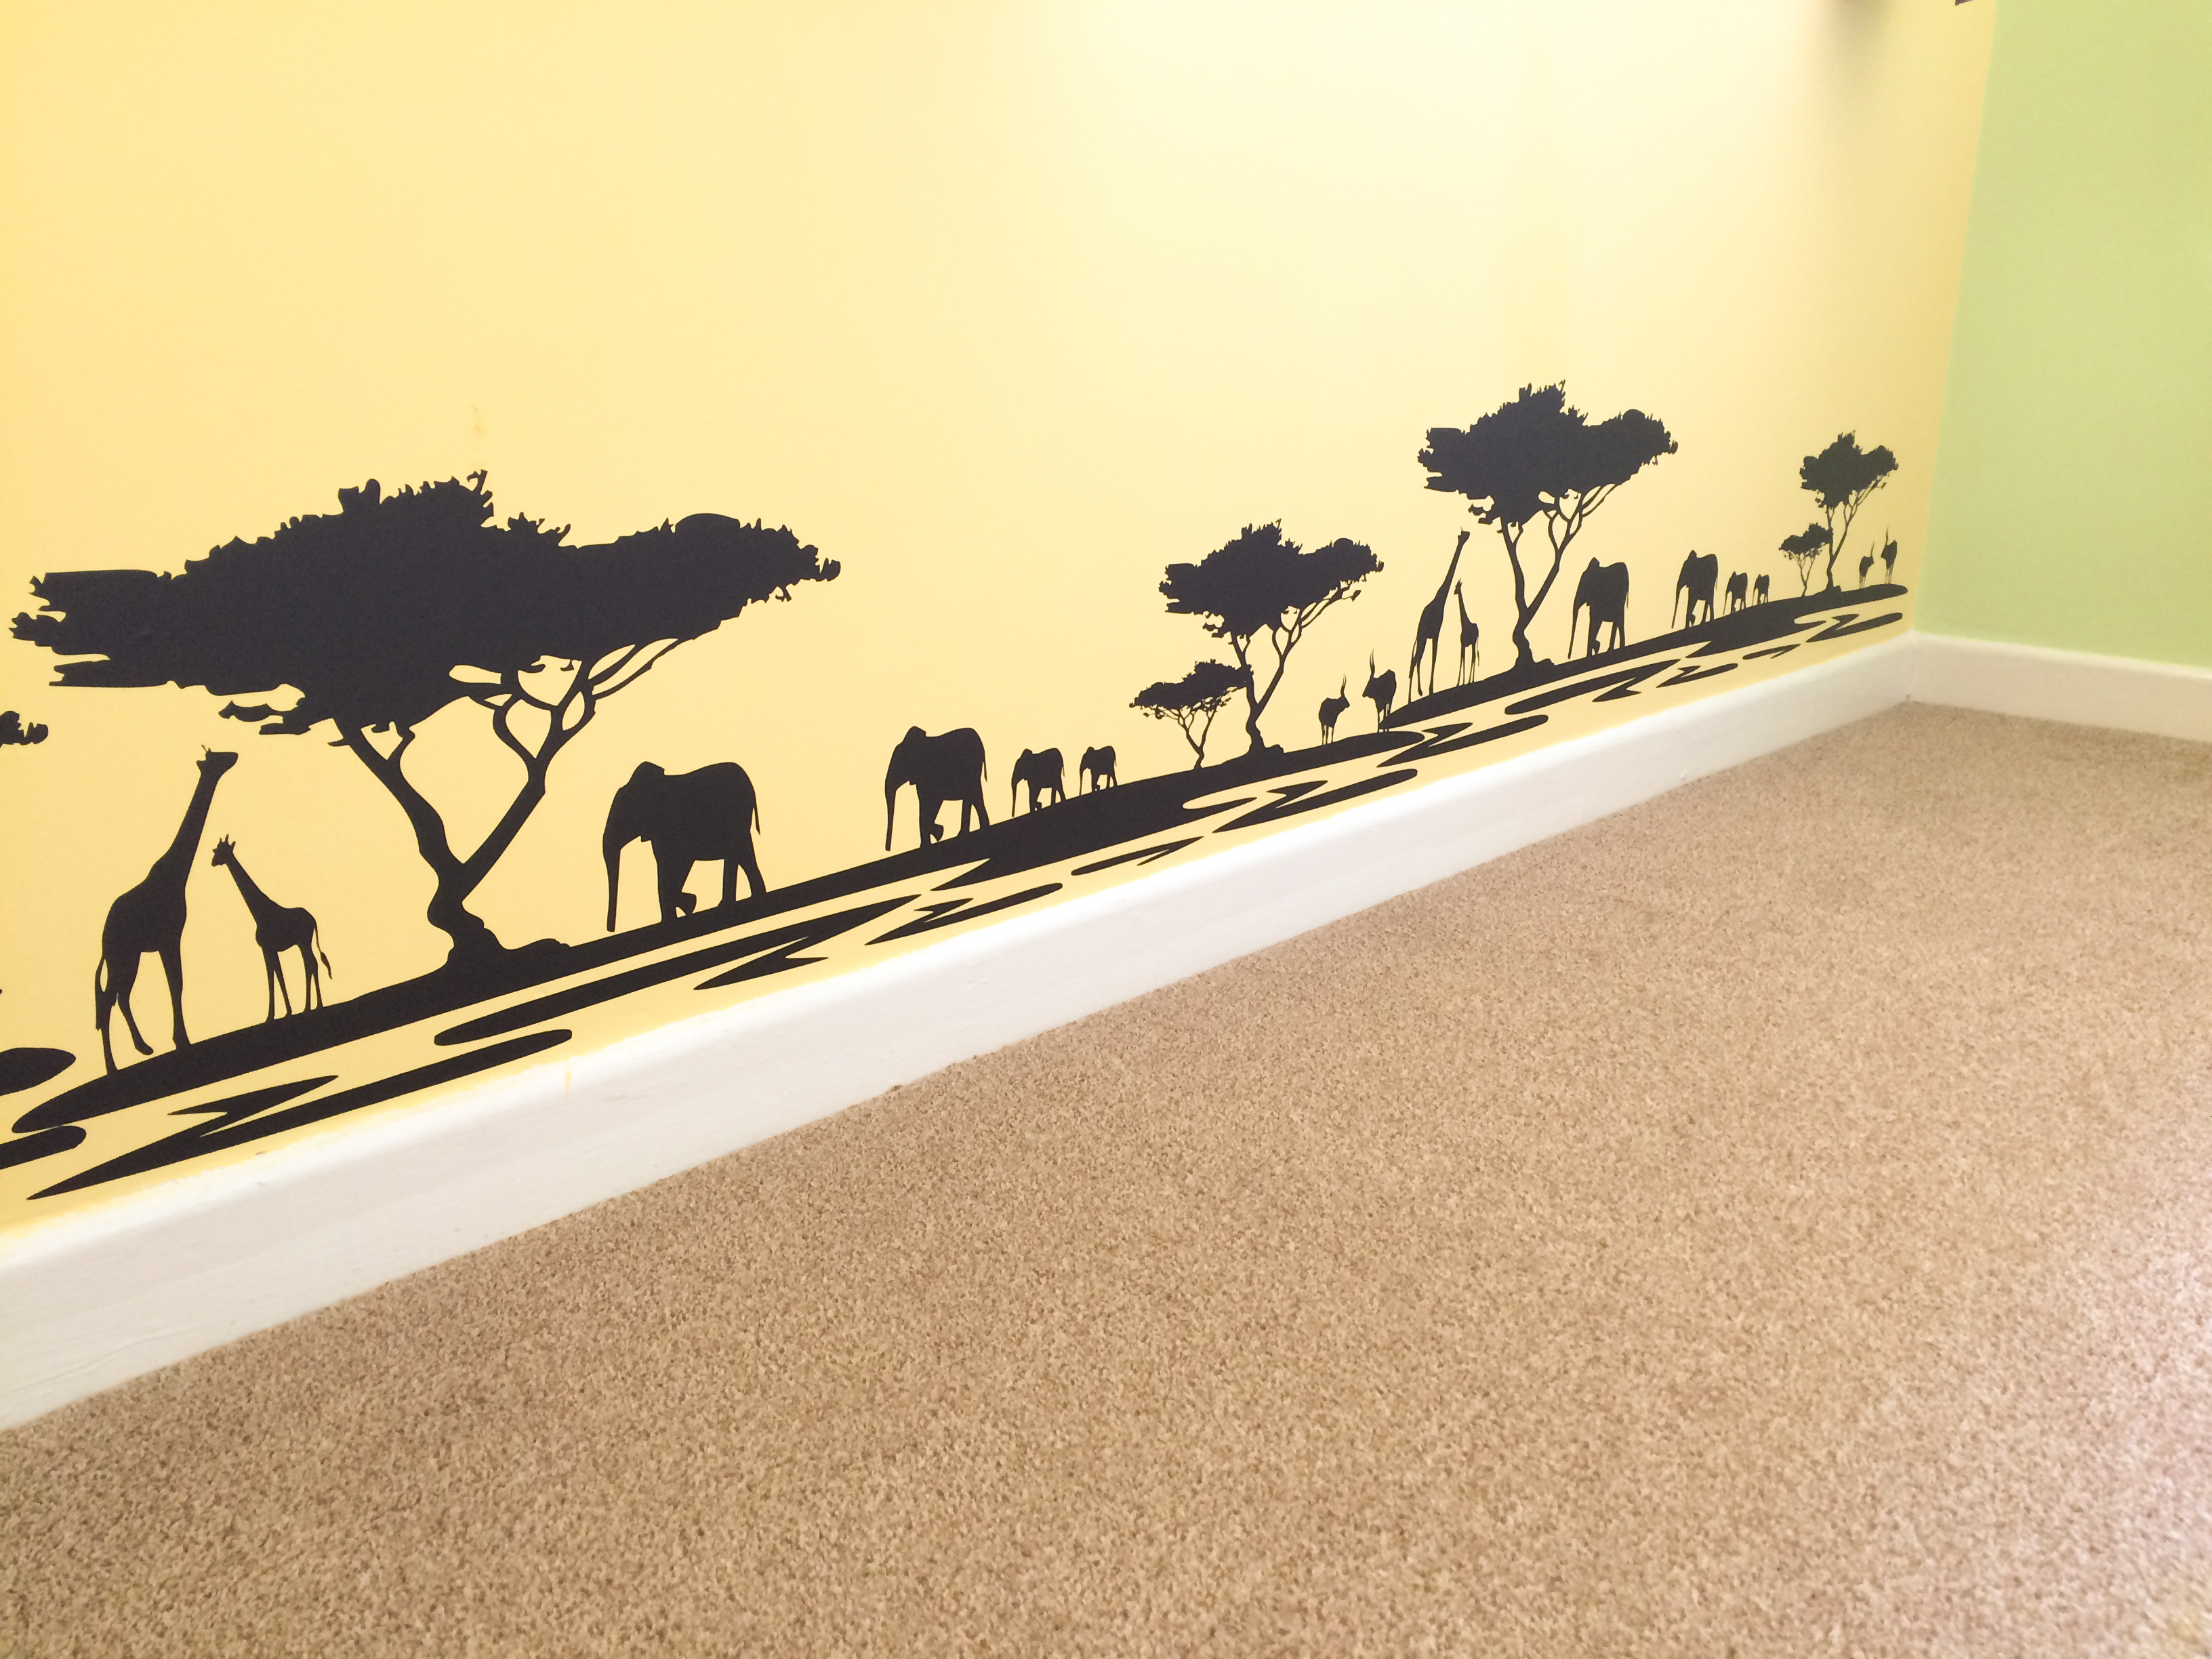 Safari Silhouette Wall Decals - Elitflat